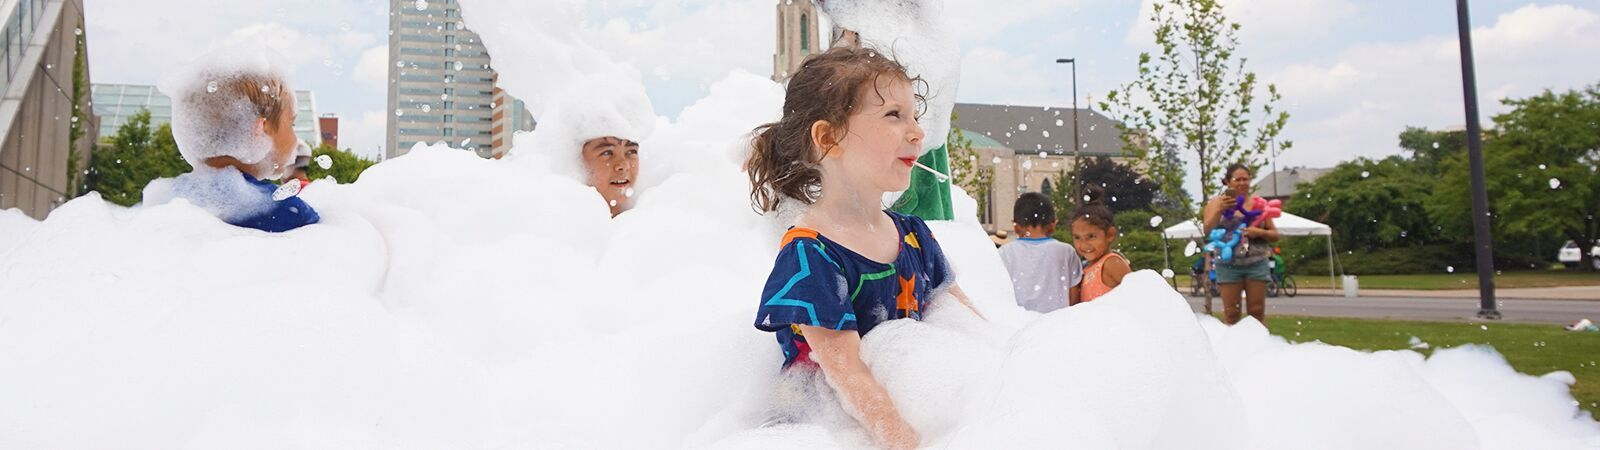 Children play in bubbles during Open Streets in downtown Fort Wayne. <span class='image-credits'>By Stephen J. Bailey</span>